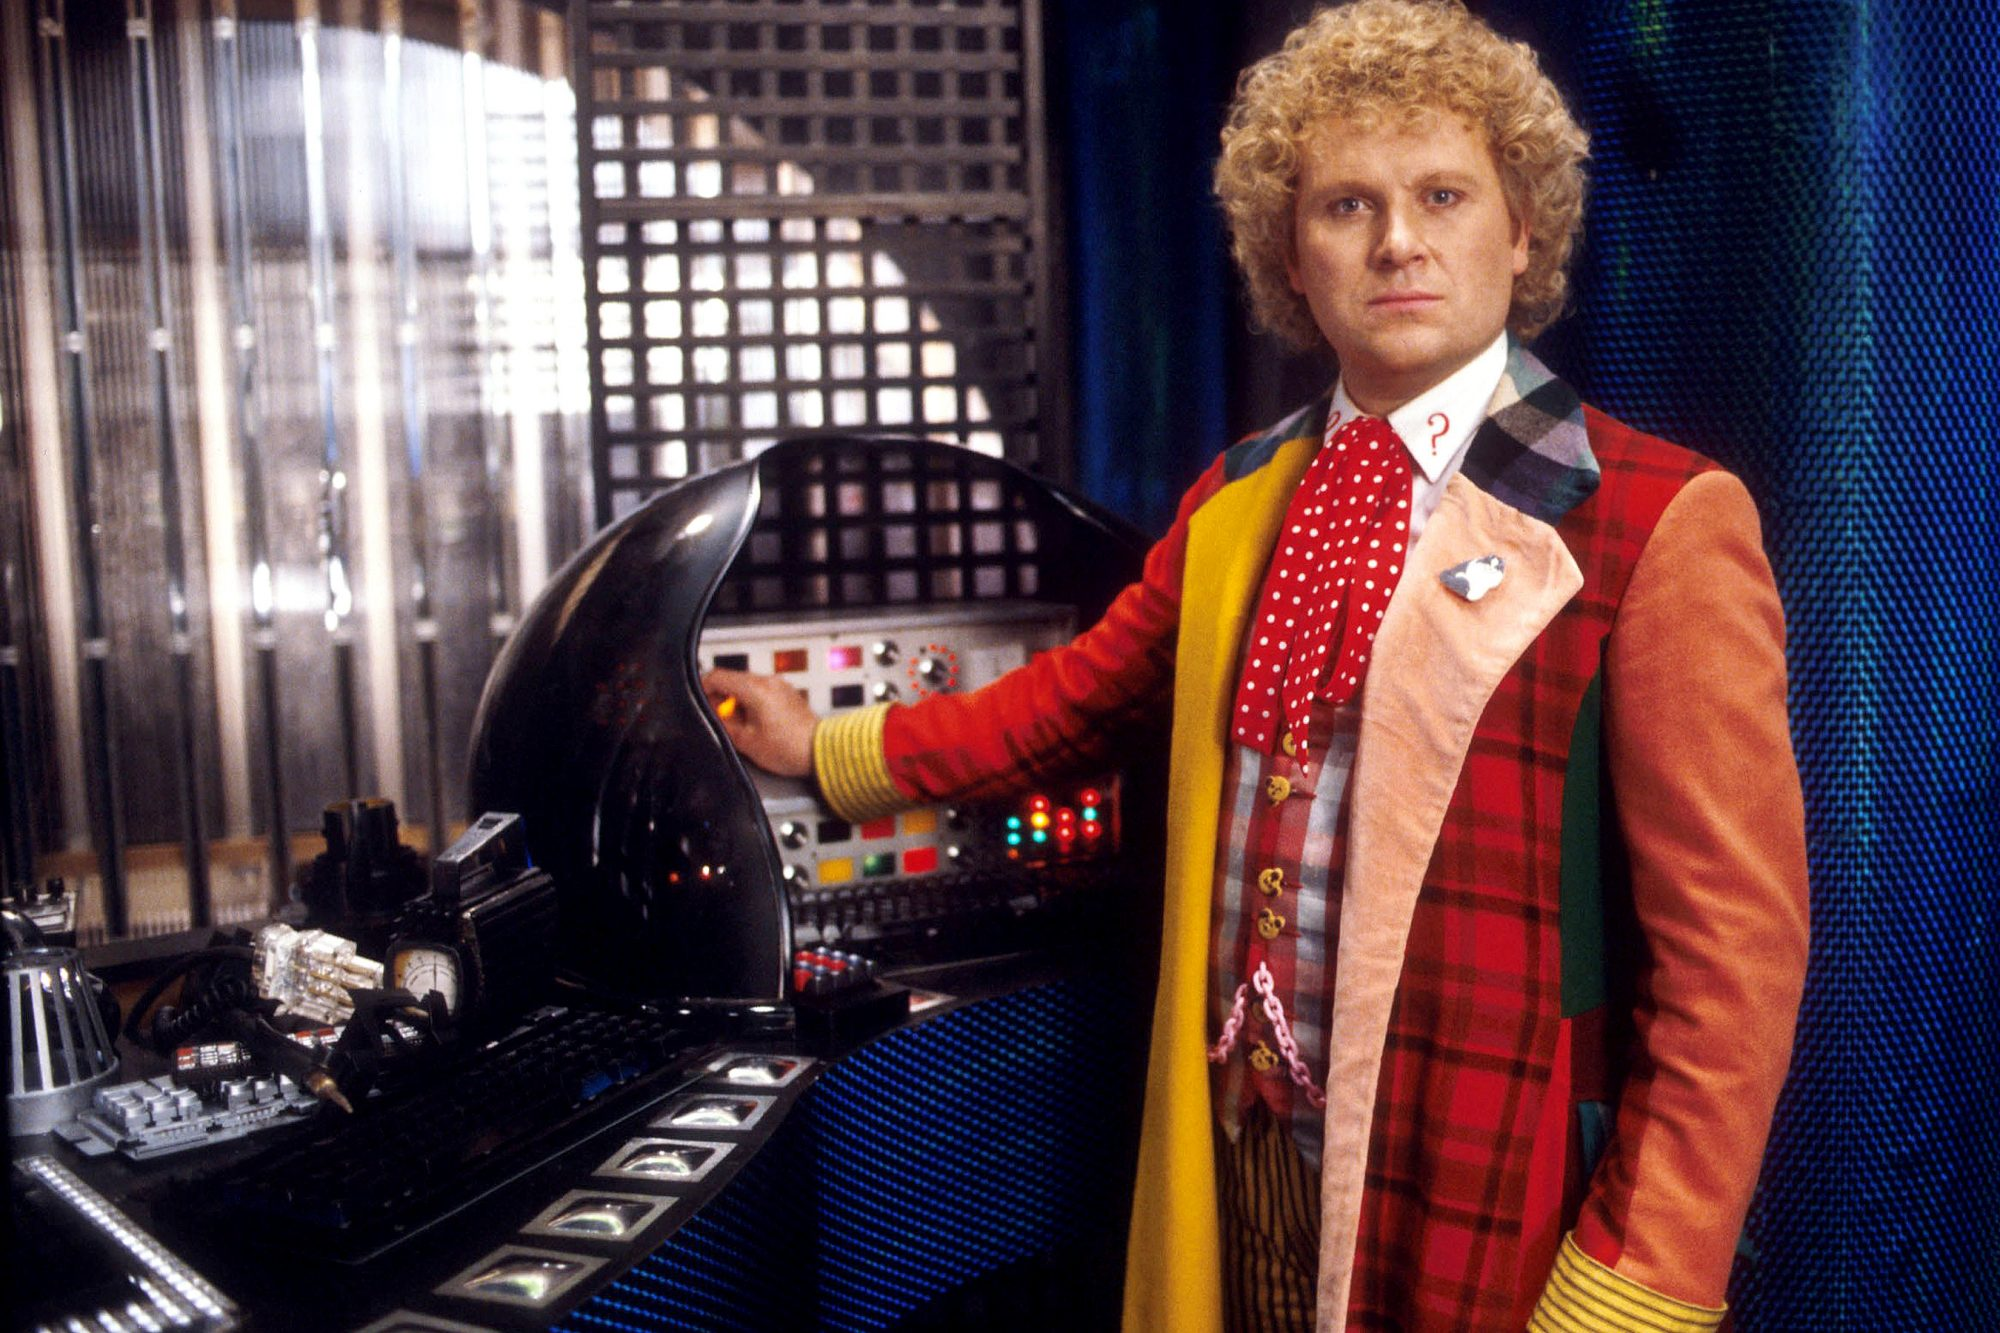 DOCTOR WHO, Colin Baker, (ca. early-mid 1980s), 1963-89. photo: ©BBC / courtesy: Everett Collection